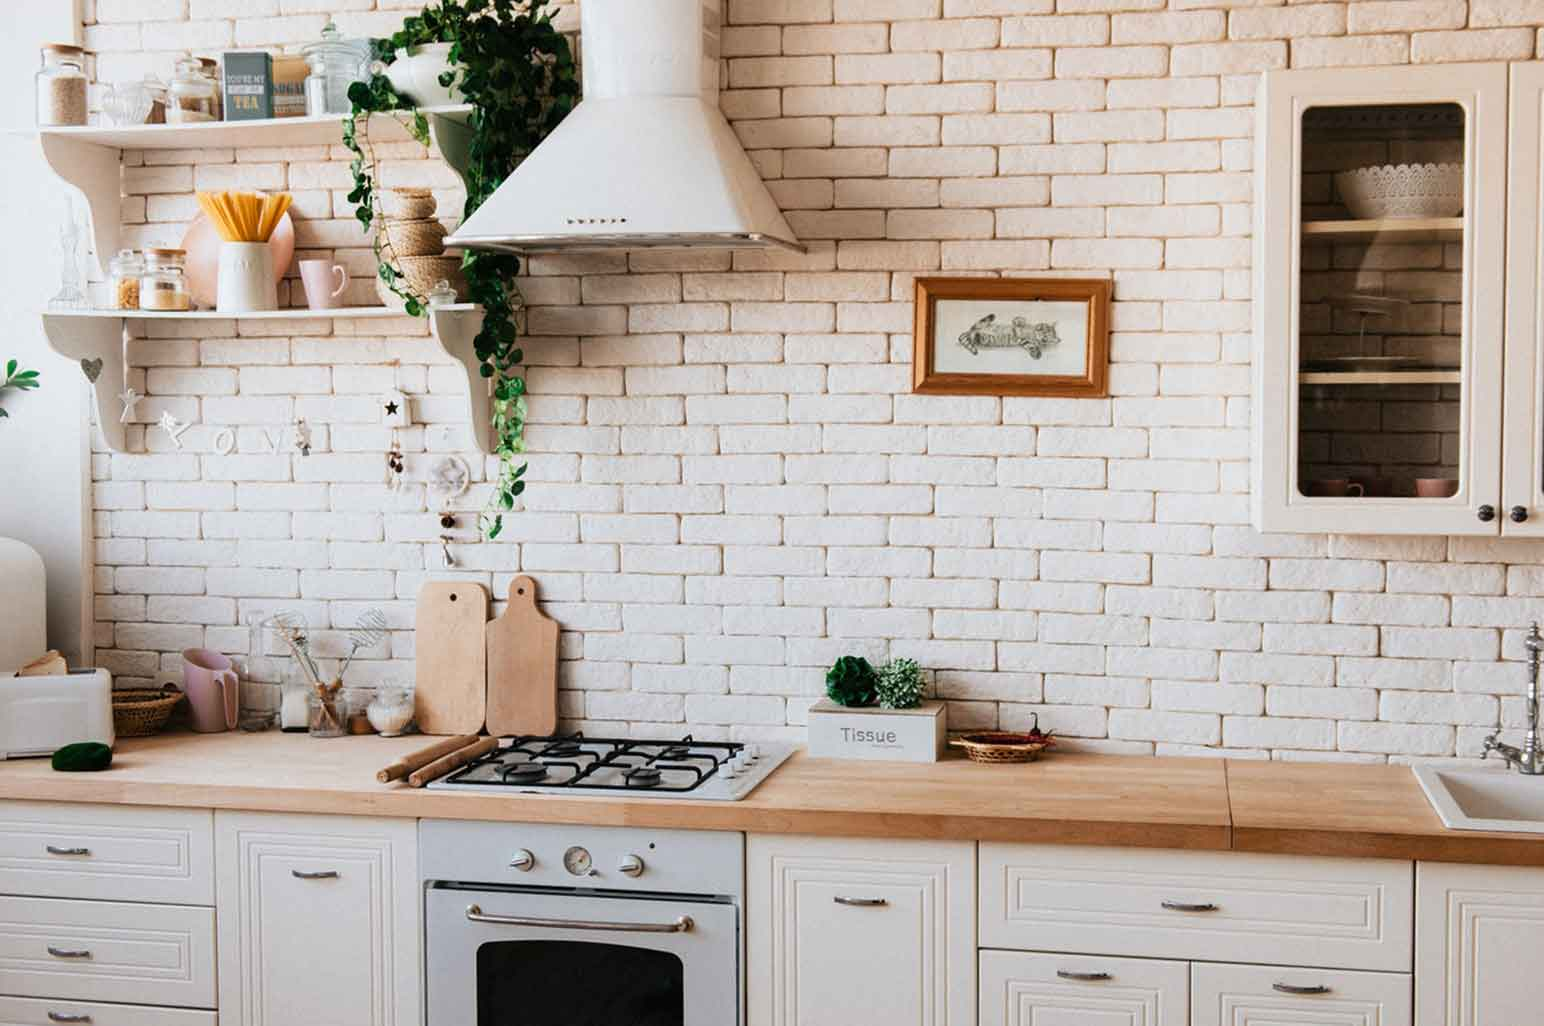 Ideas for a Kitchen Makeover